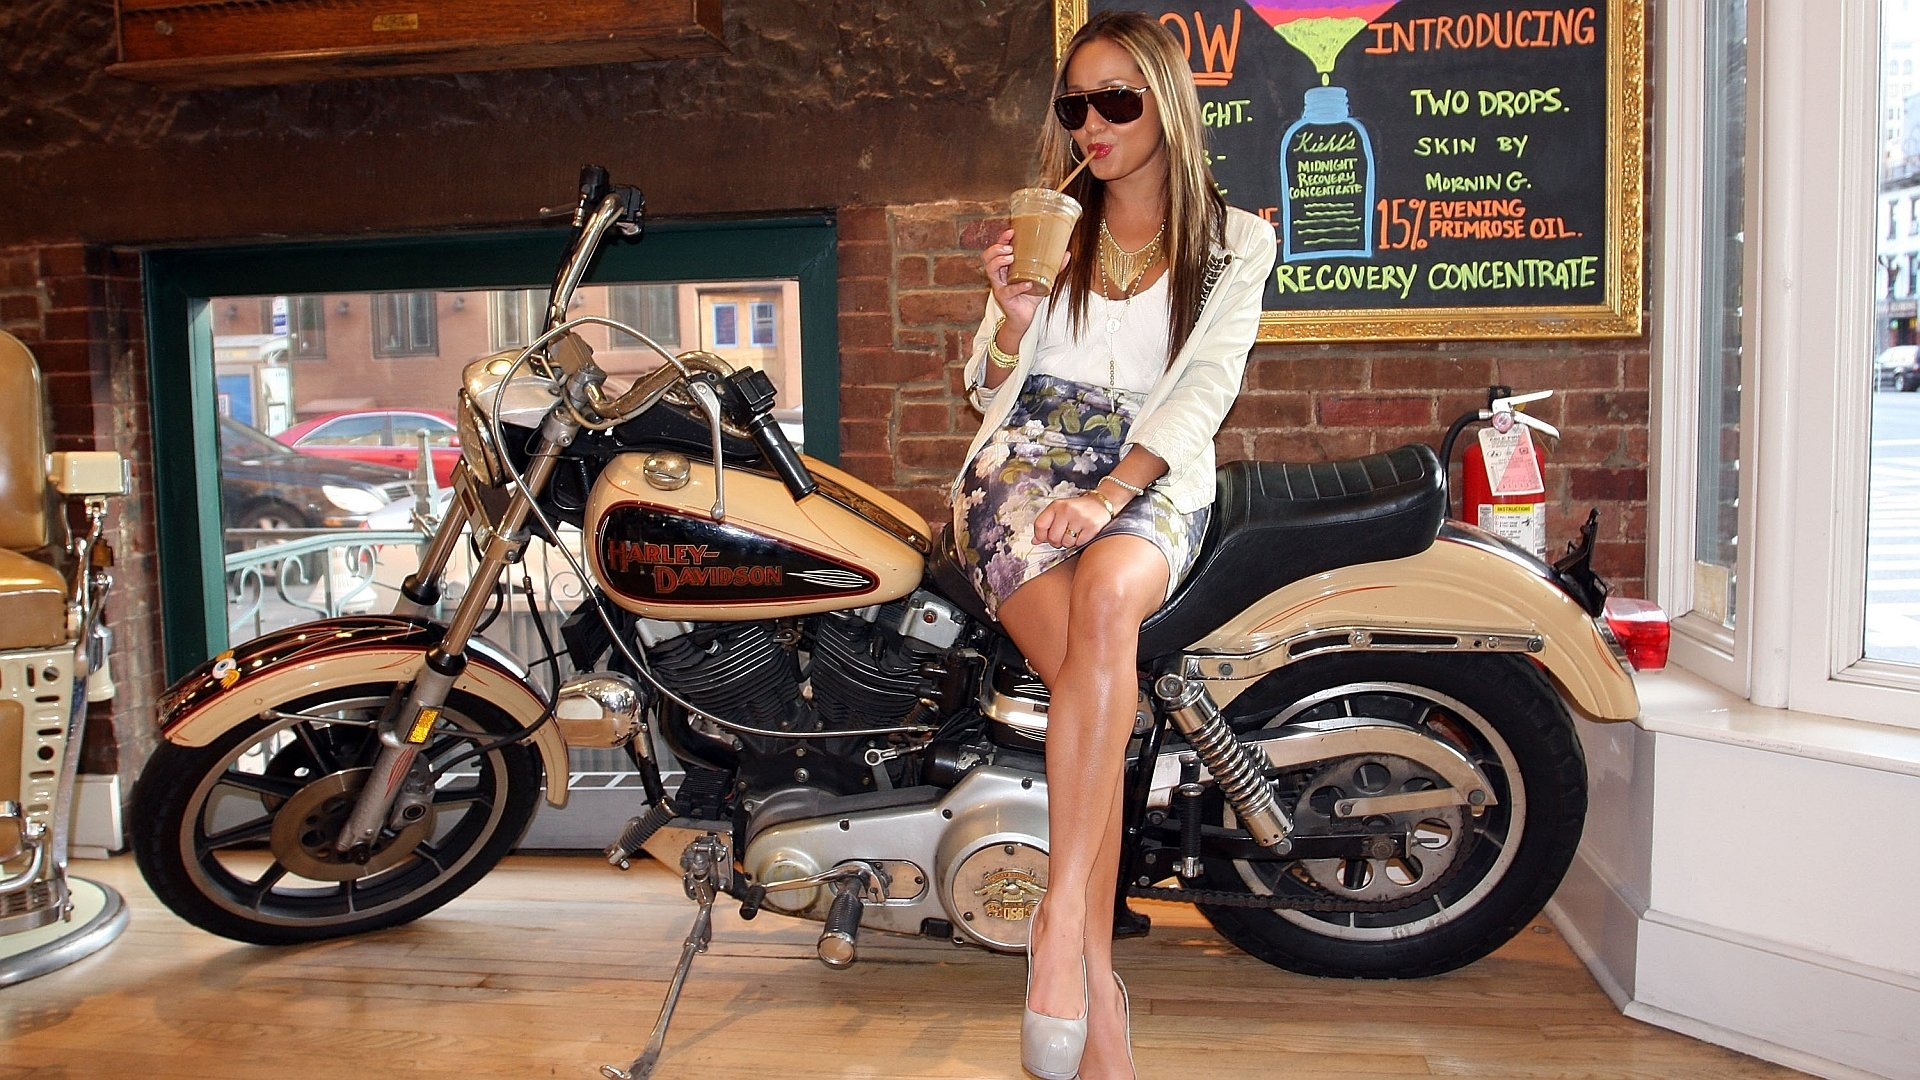 82 harley davidson hd wallpapers backgrounds wallpaper abyss harley davidson marisa miller hd wallpaper background id160957 sciox Image collections